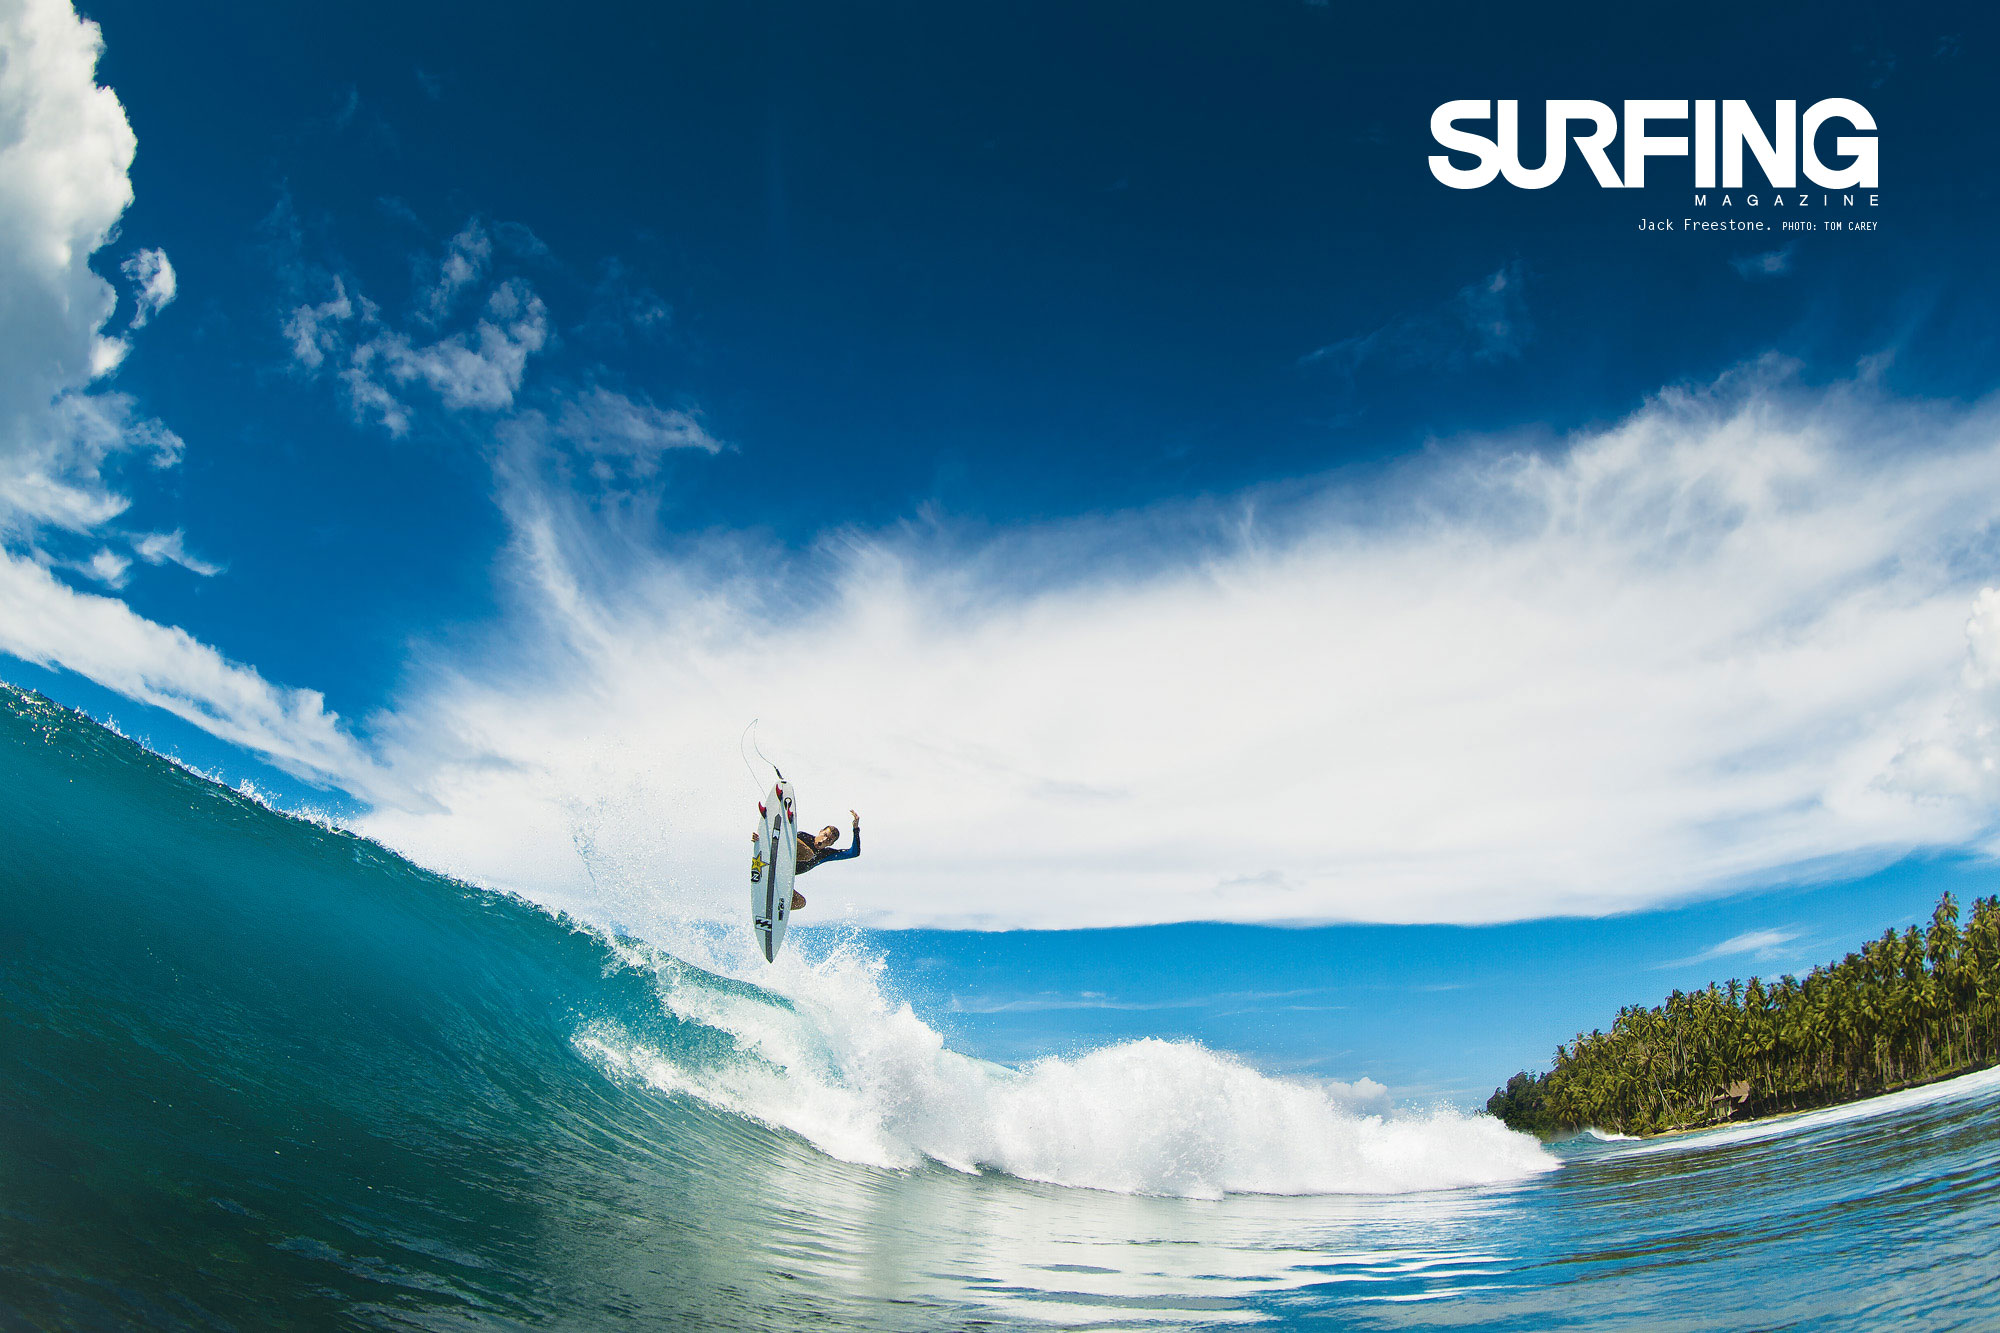 Beautiful Surfer Wallpaper | BsnSCB